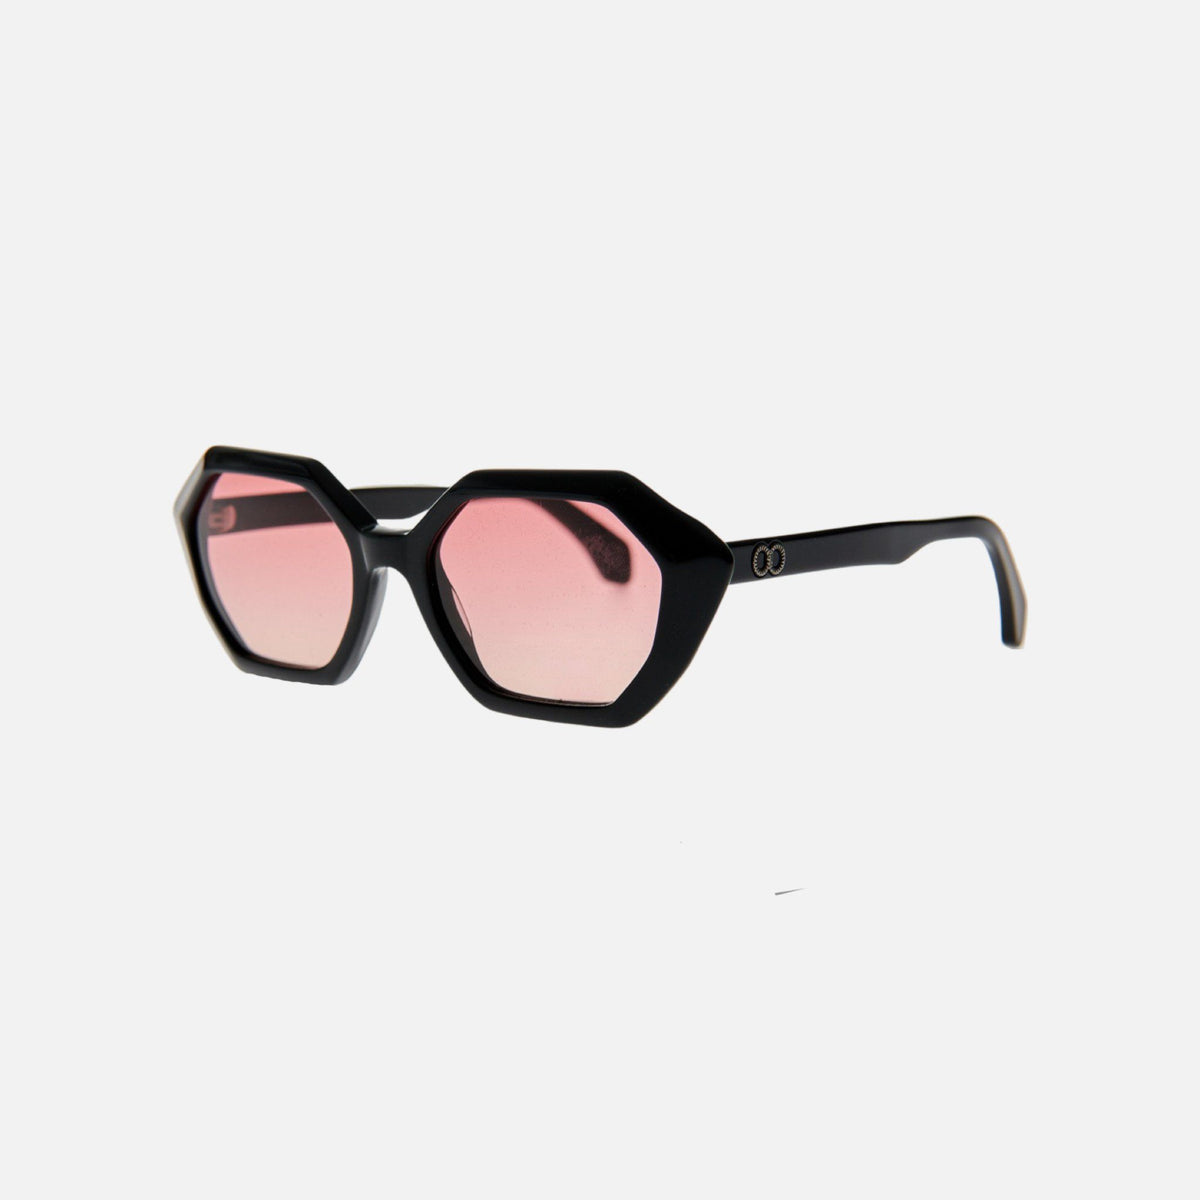 SNARE Bio-Acetate Gloss Black | Rose Gradient Vital Lens